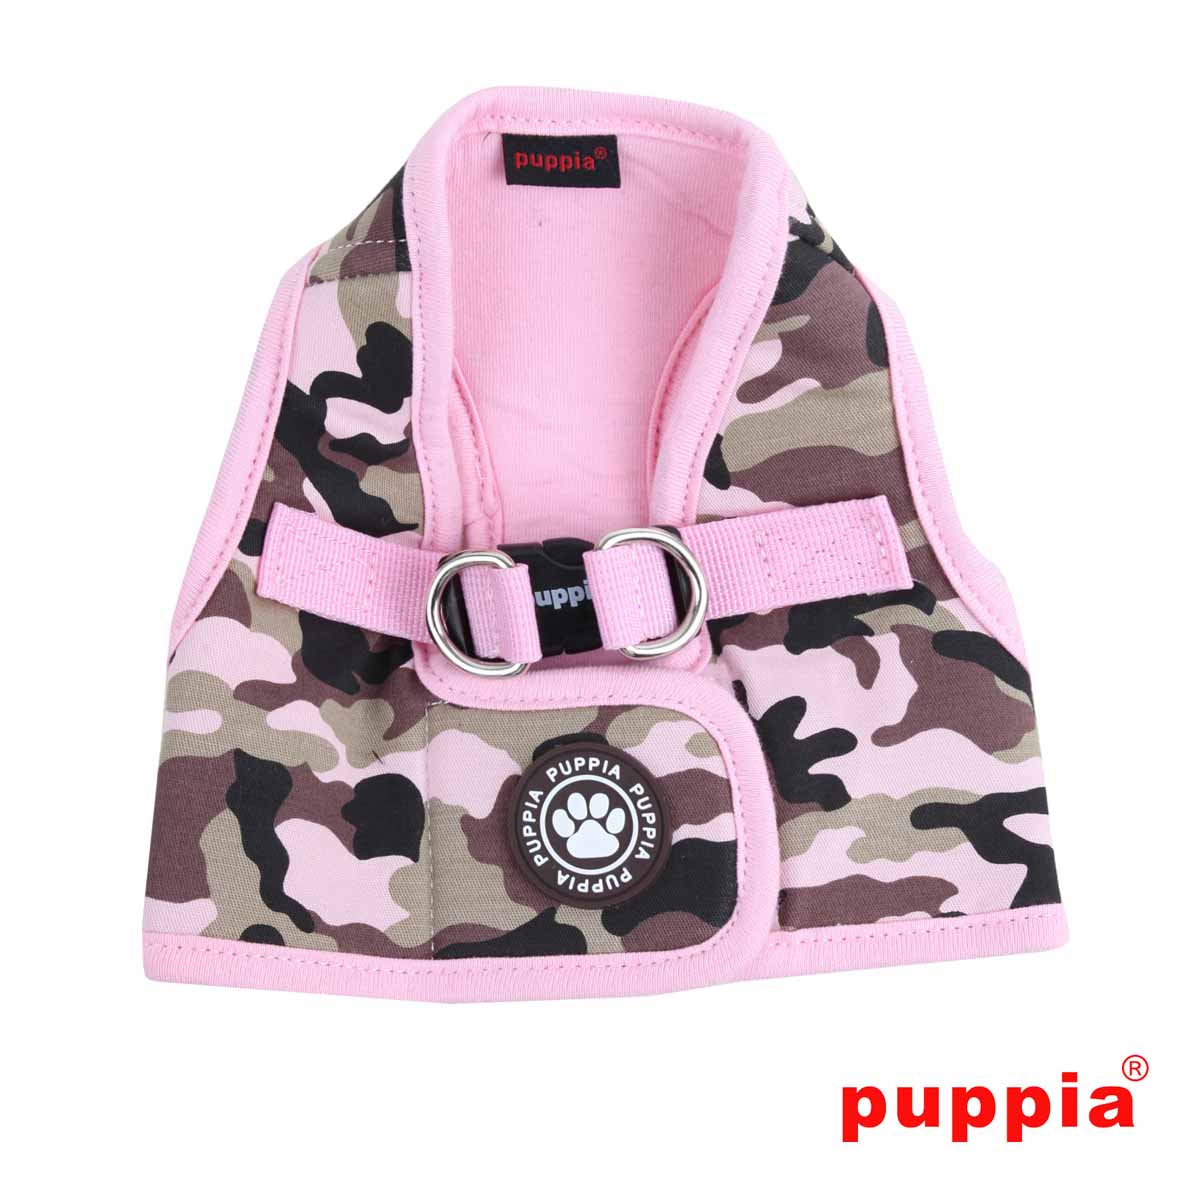 Legend Dog Harness Vestpuppia Pink Camo on How To Make A Dog Harness Vest